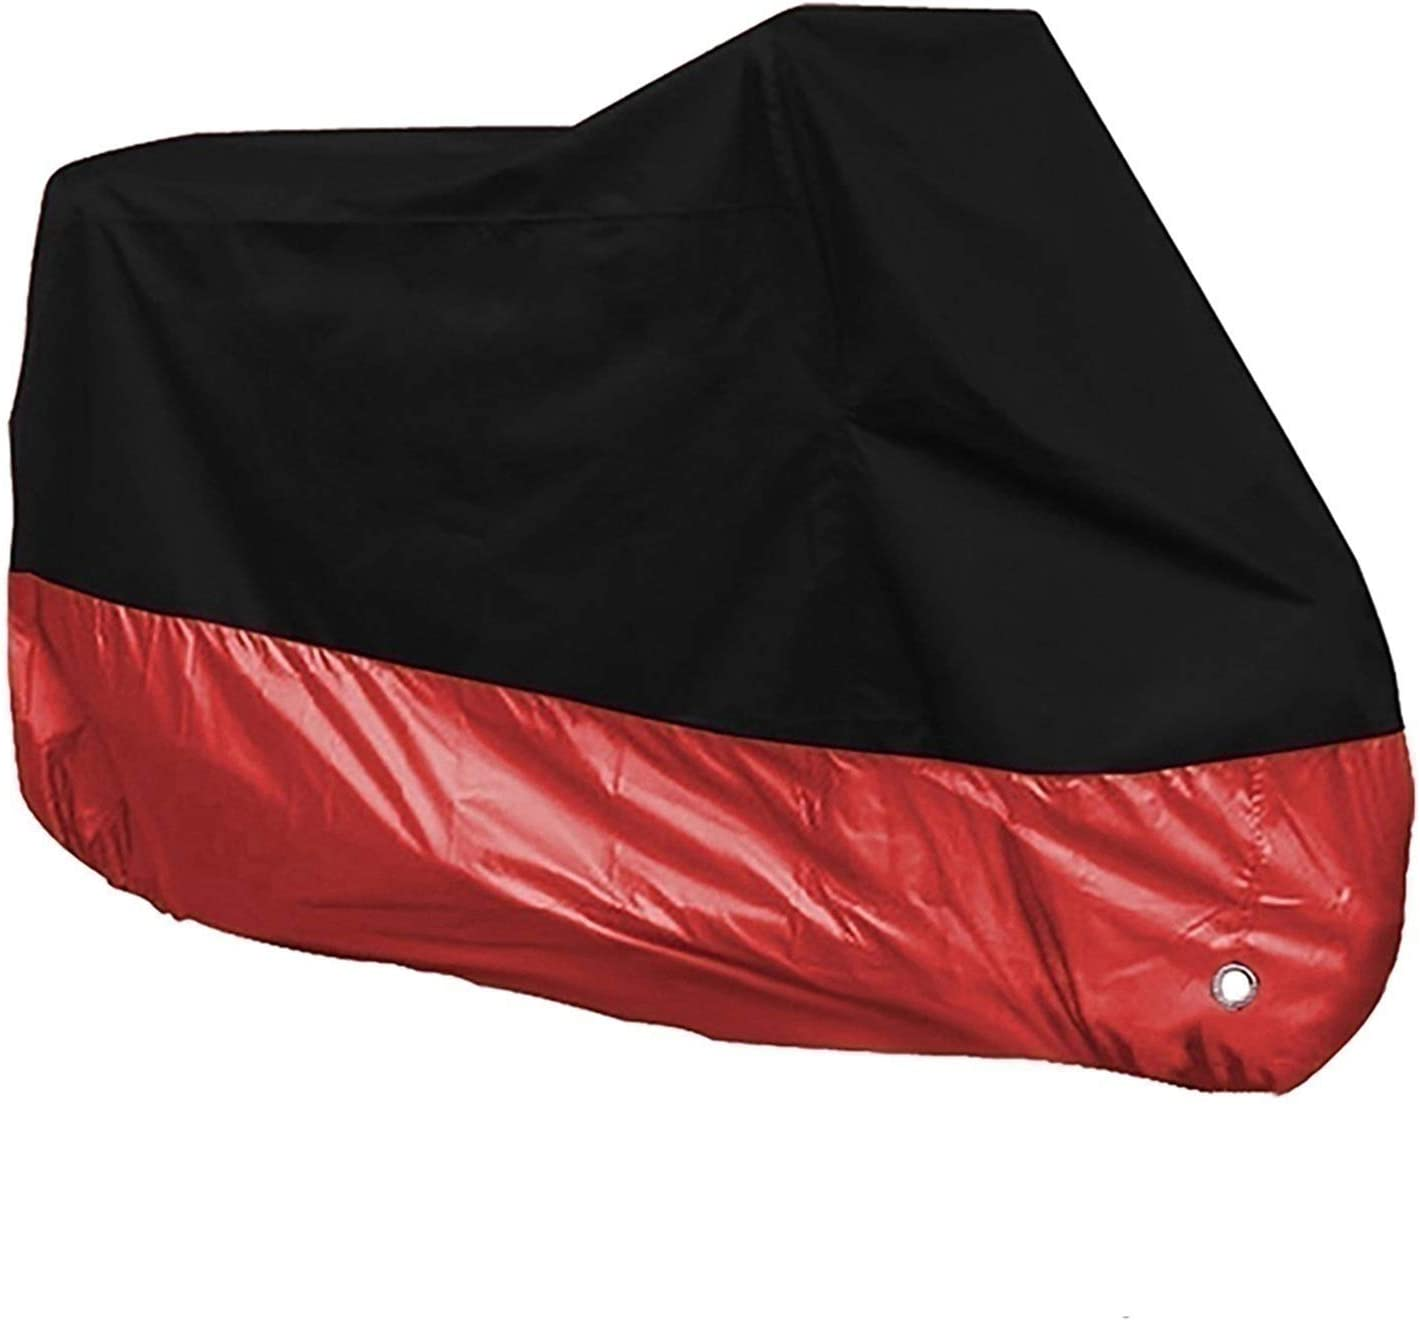 Saladplates-LXM Motorcycle Cover with Compatible Direct sale of manufacturer Gorgeous Cove